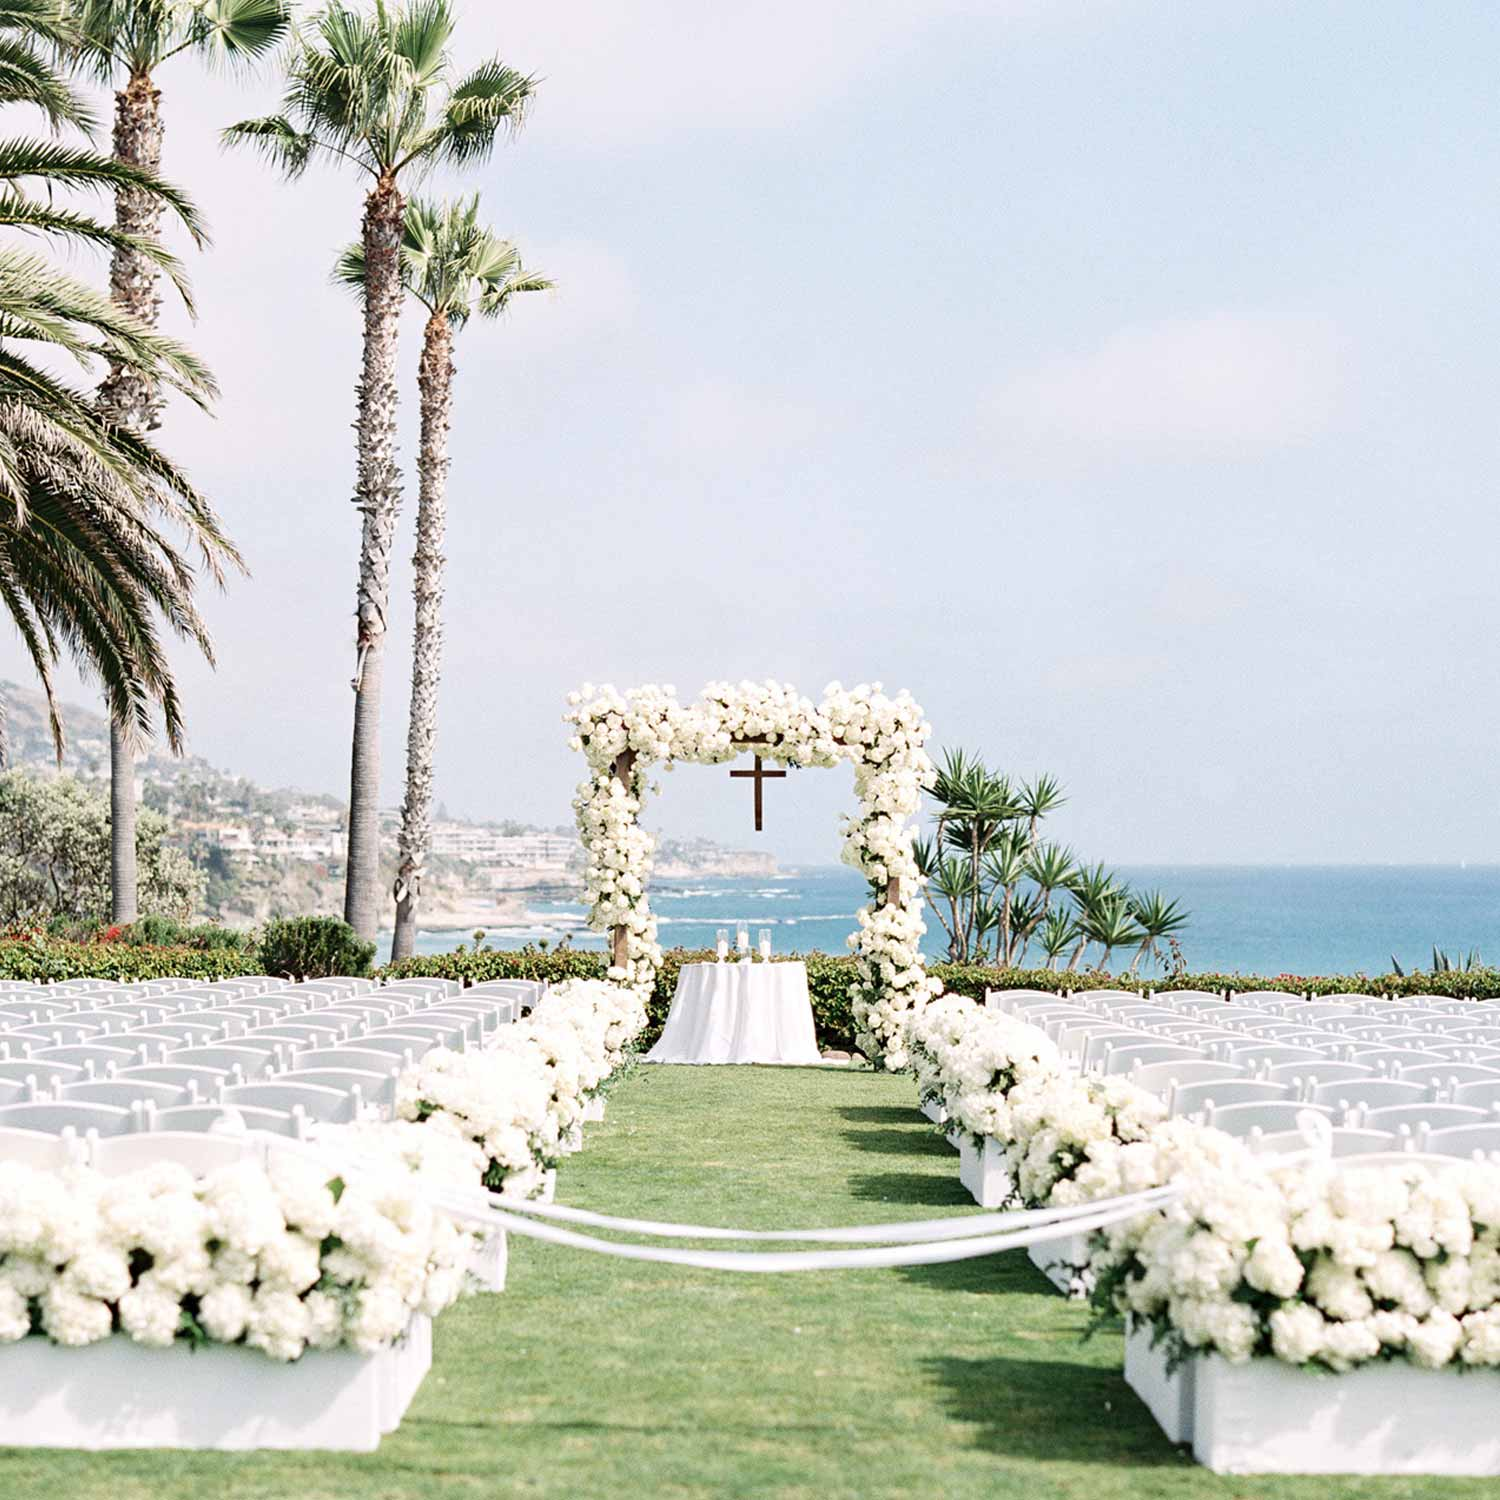 montage-socal-wedding-1500-1